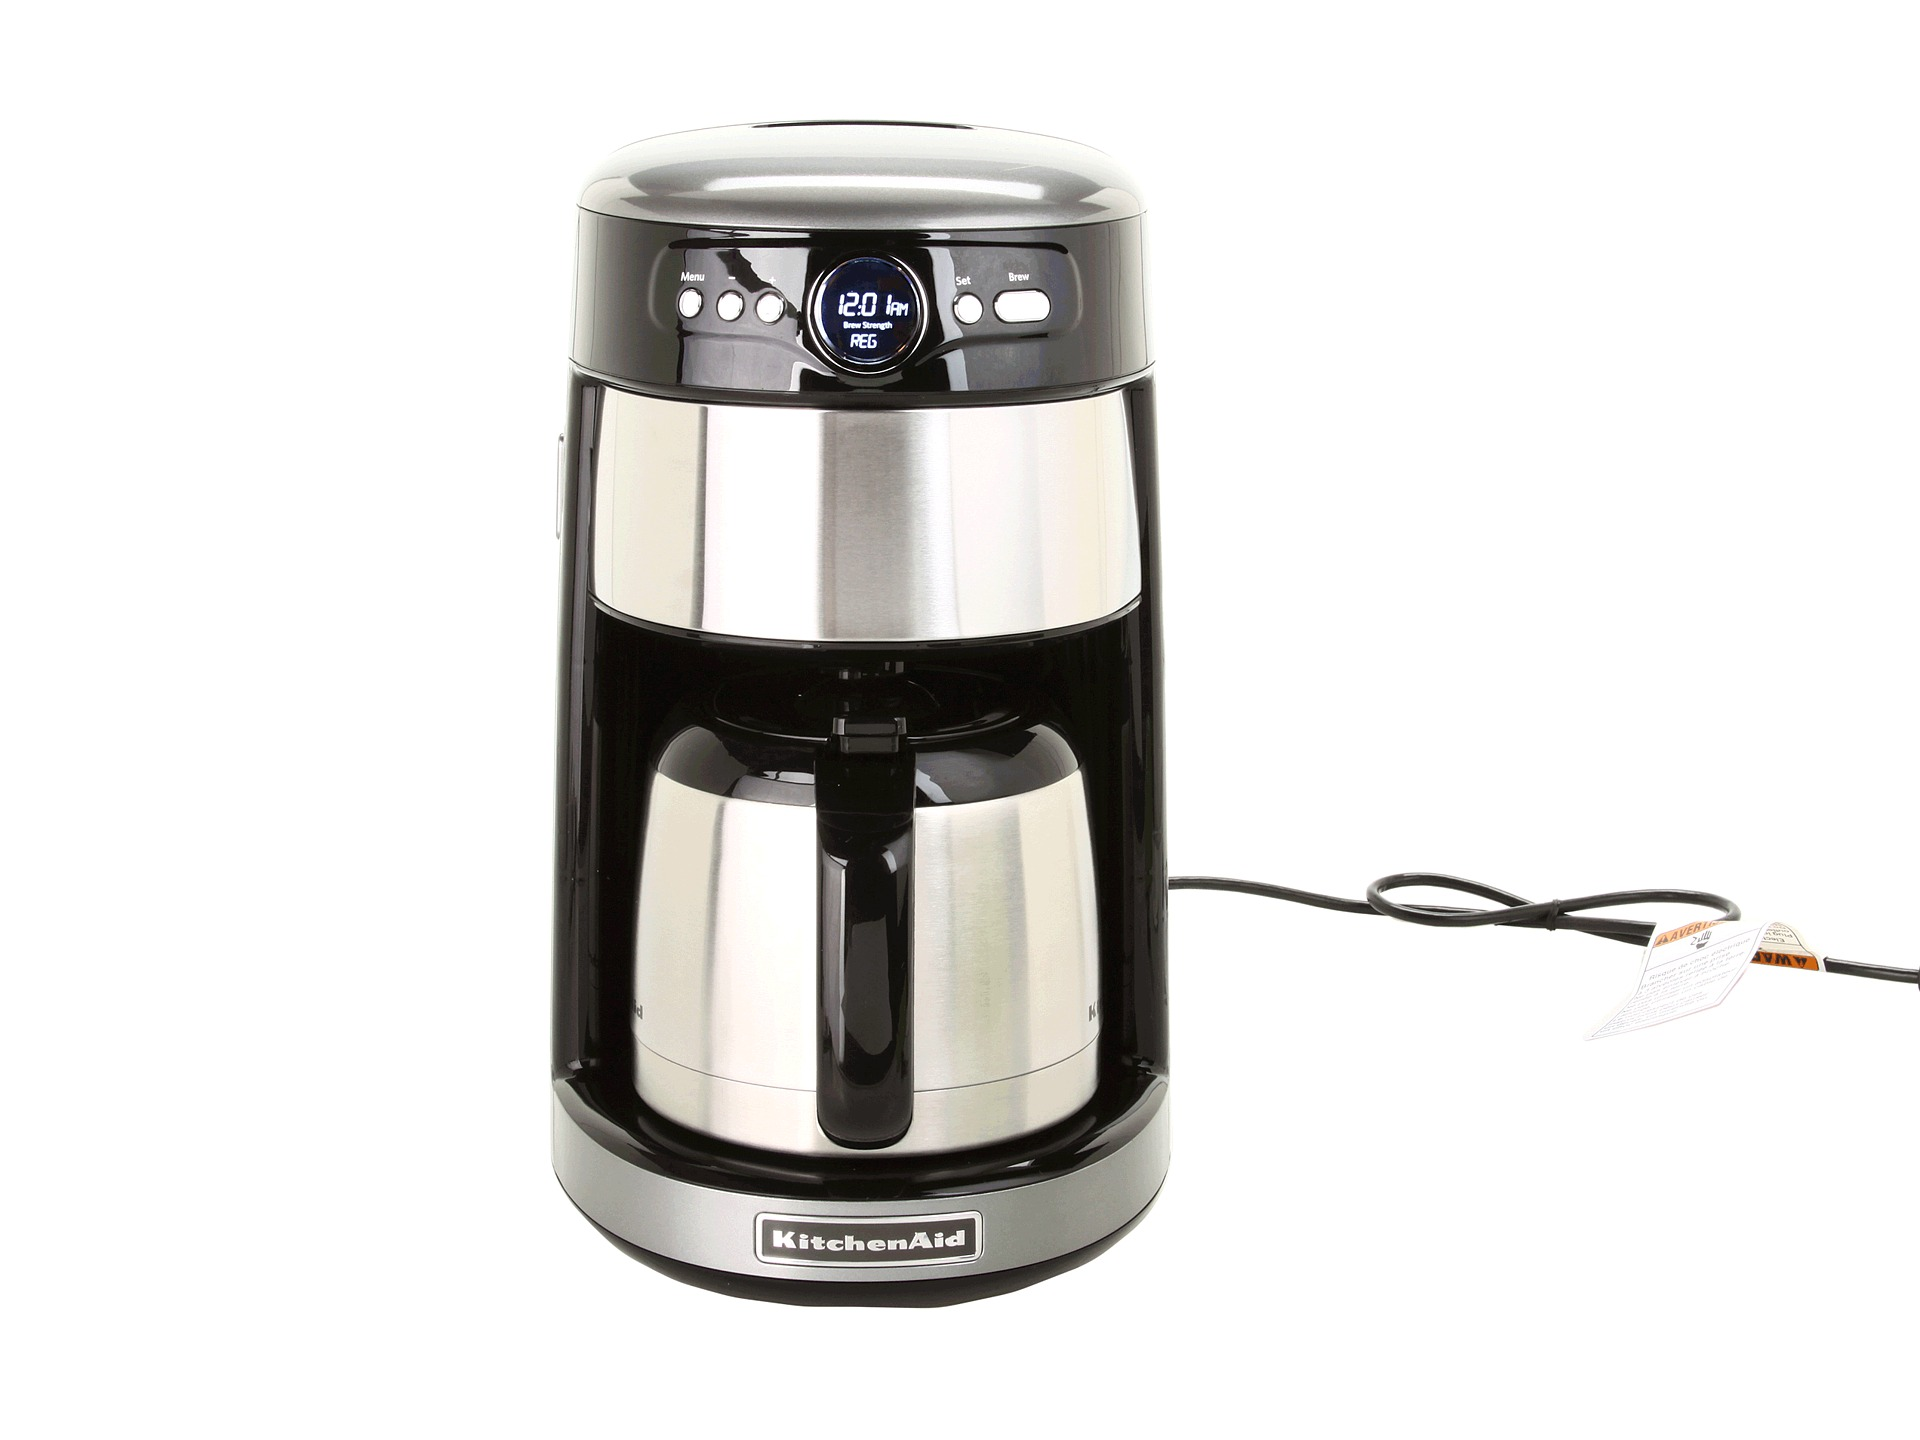 Kitchenaid Coffee Maker New : Kitchenaid 12 Cup Thermal Coffee Maker Shipped Free at Zappos